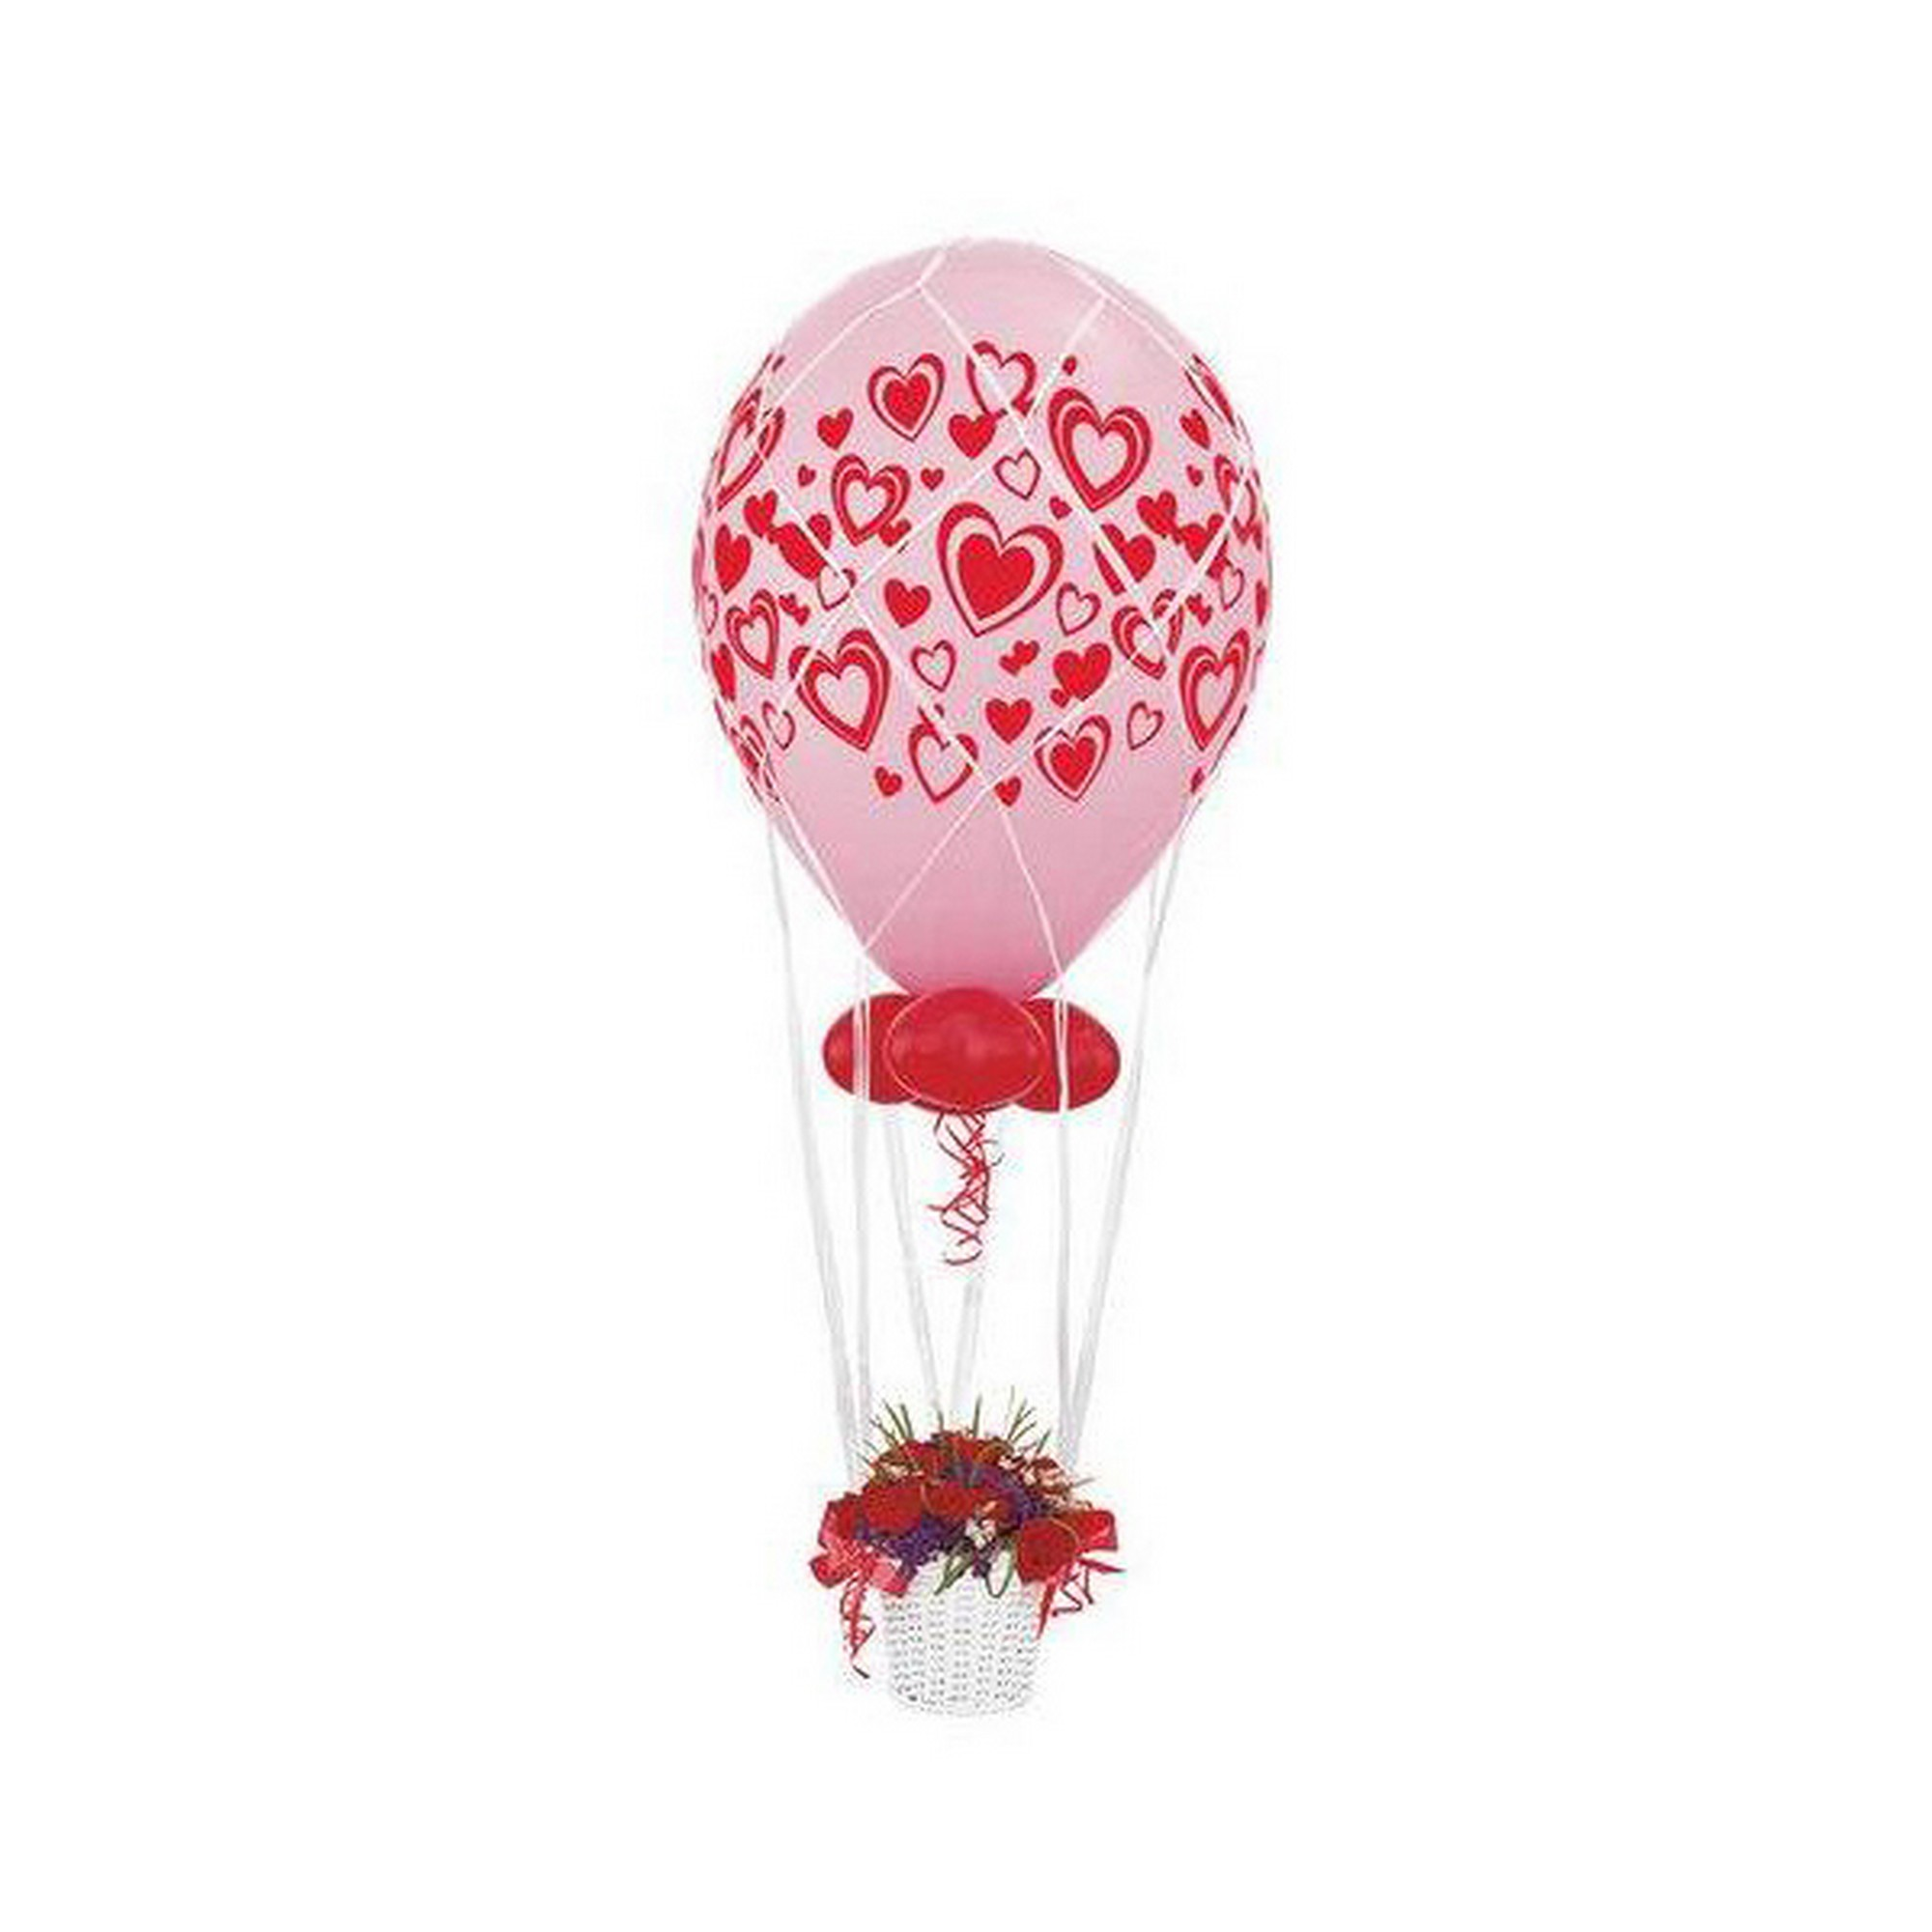 Qualatex white balloon centerpiece netting for Balloon nets for centerpieces